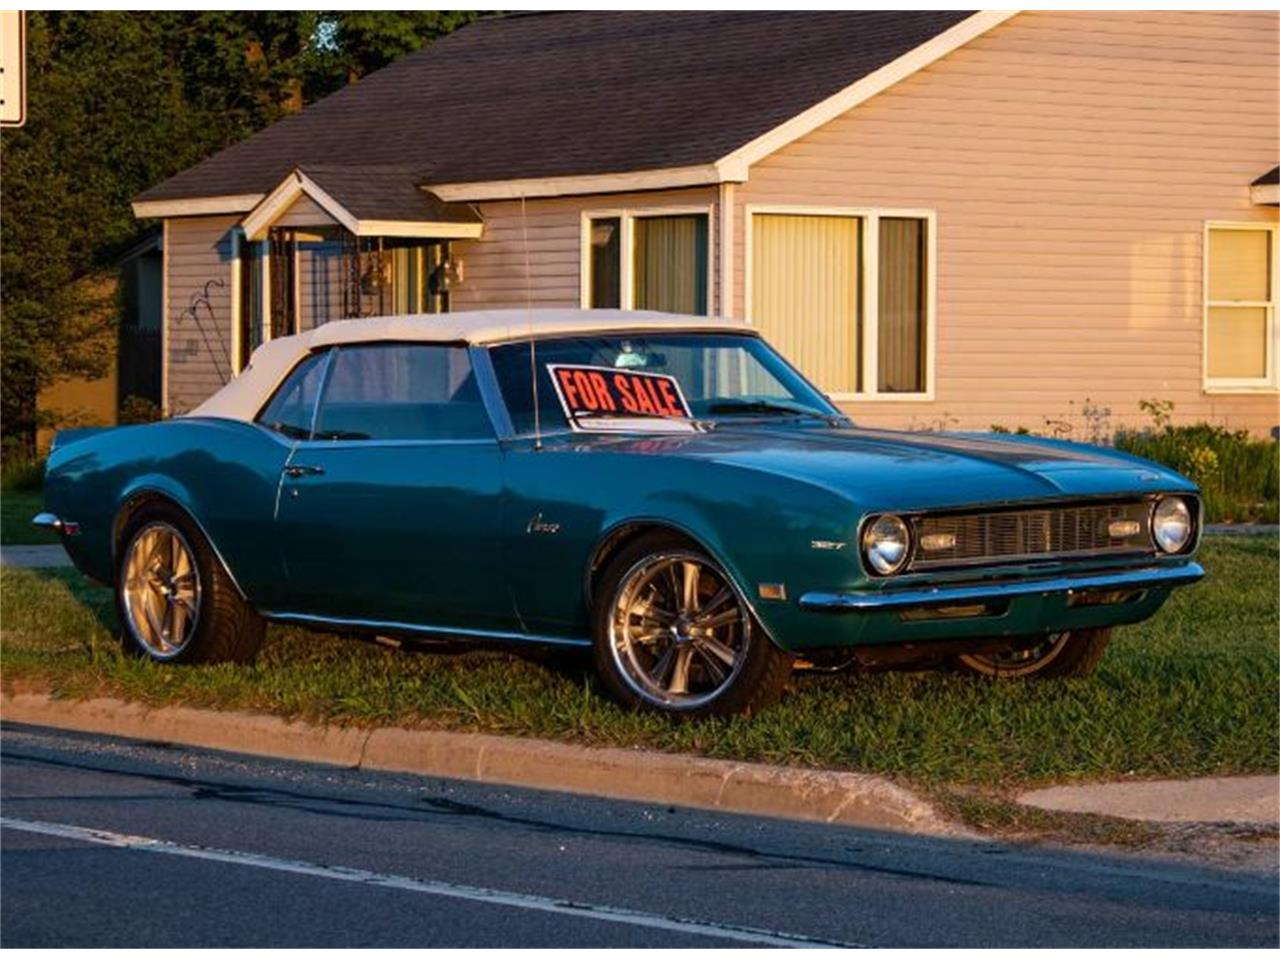 Large Picture of '68 Camaro - $30,995.00 Offered by Classic Car Deals - QBPJ